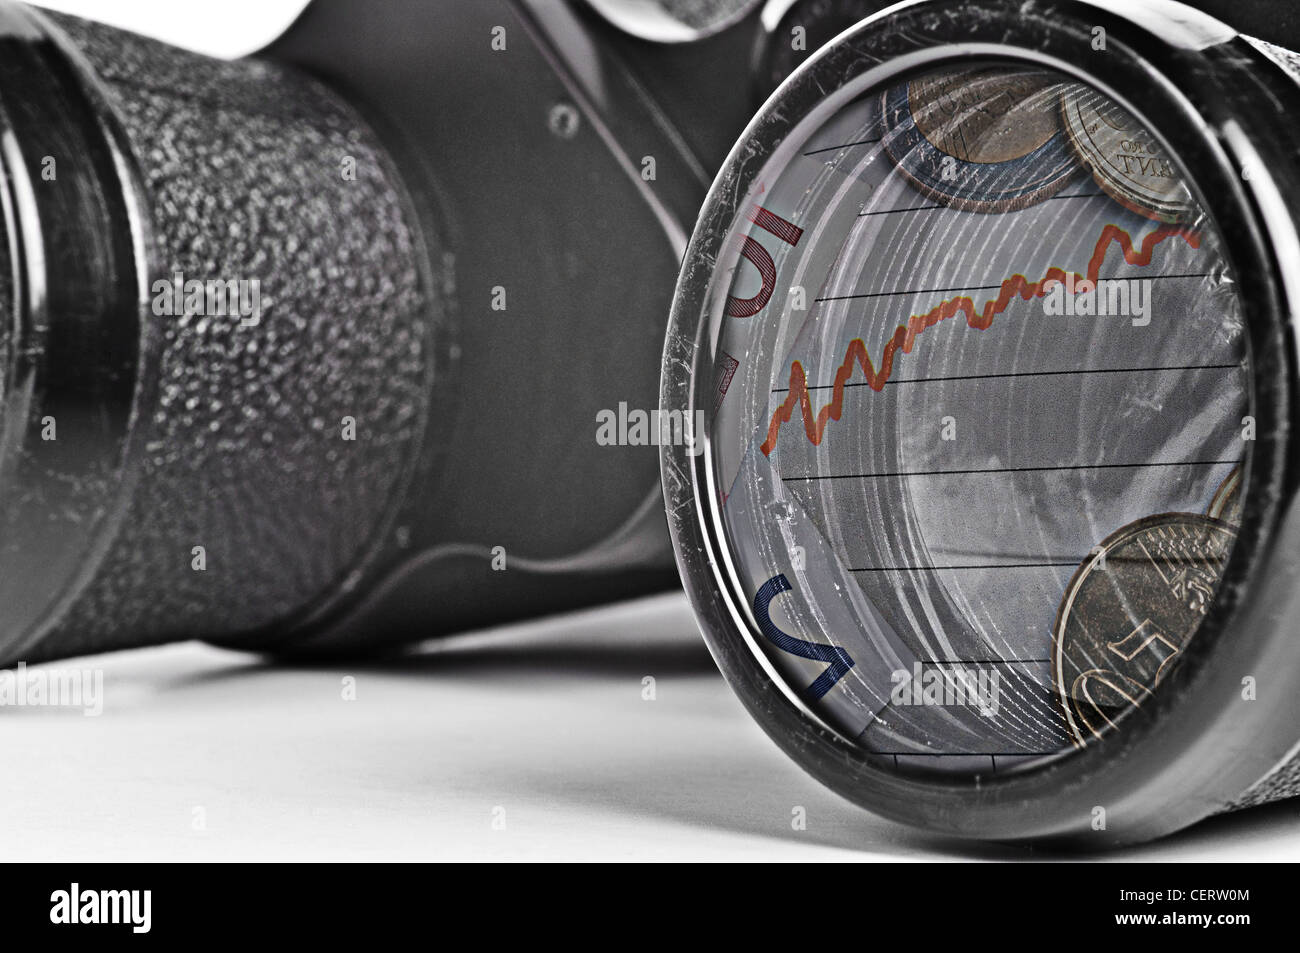 Old Binoculars Seeing Financial Crisis, gritty grainy look. - Stock Image